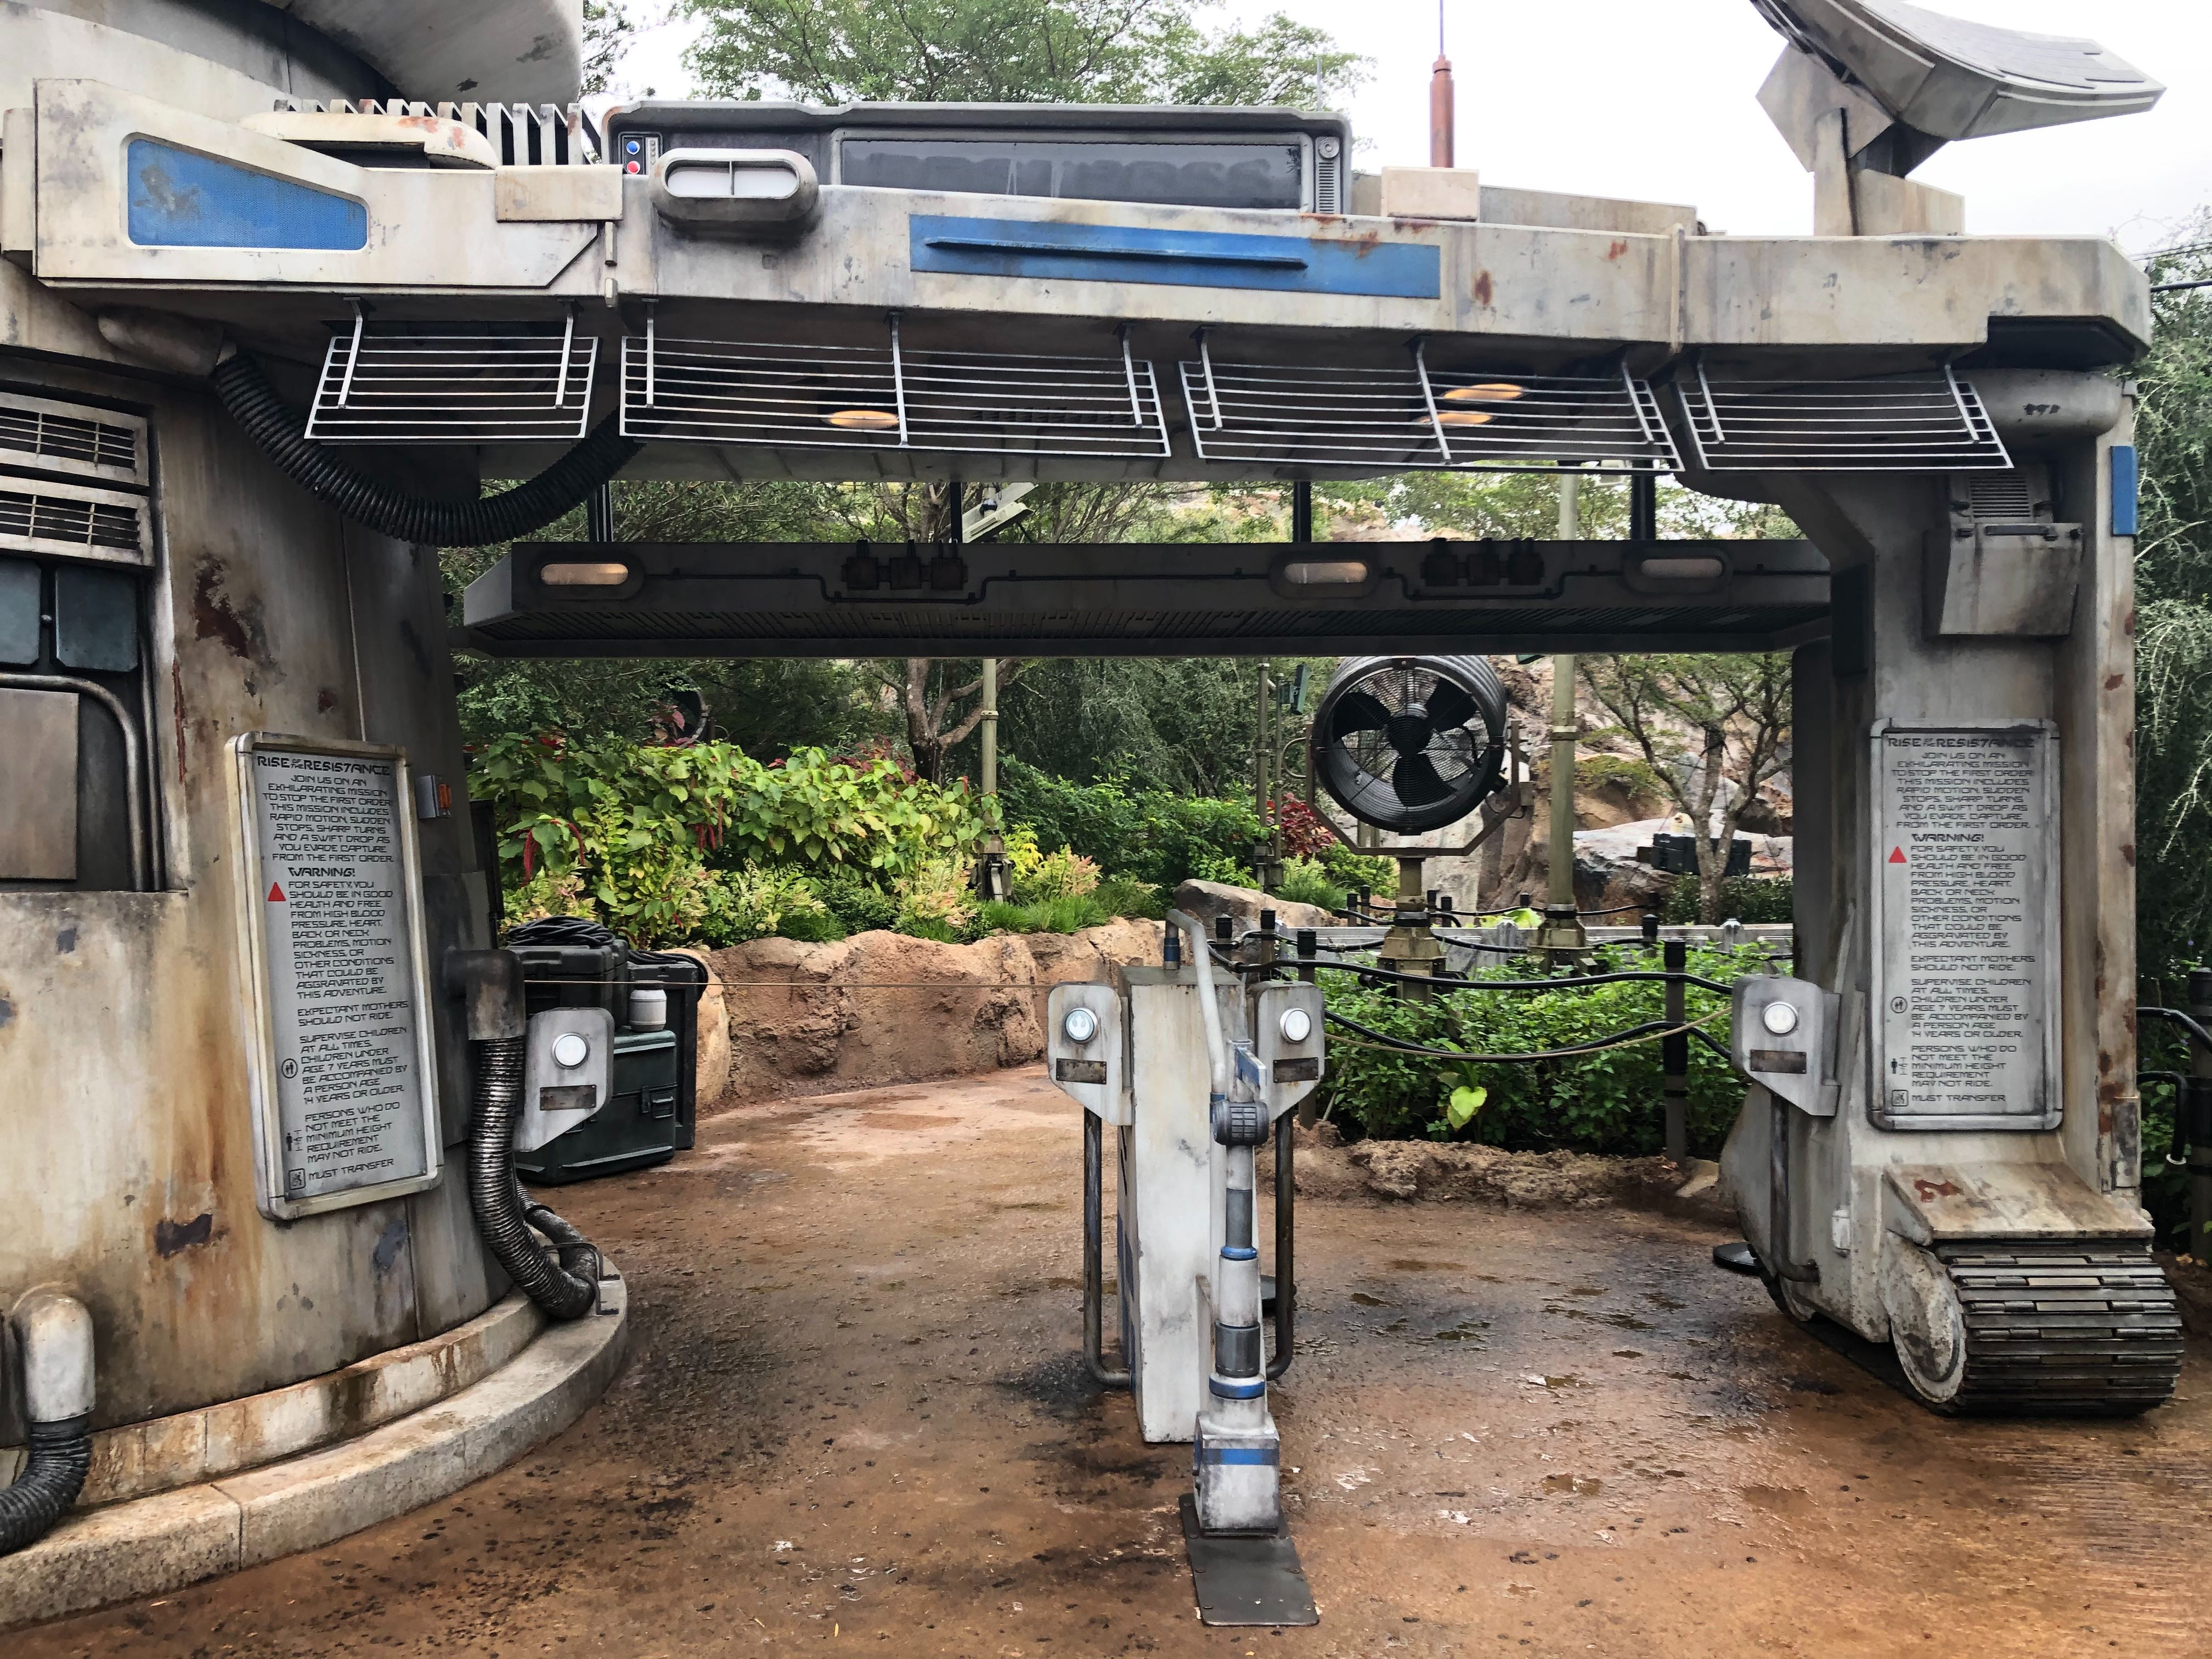 Ride Related Signage For Star Wars Rise Of The Resistance Installed